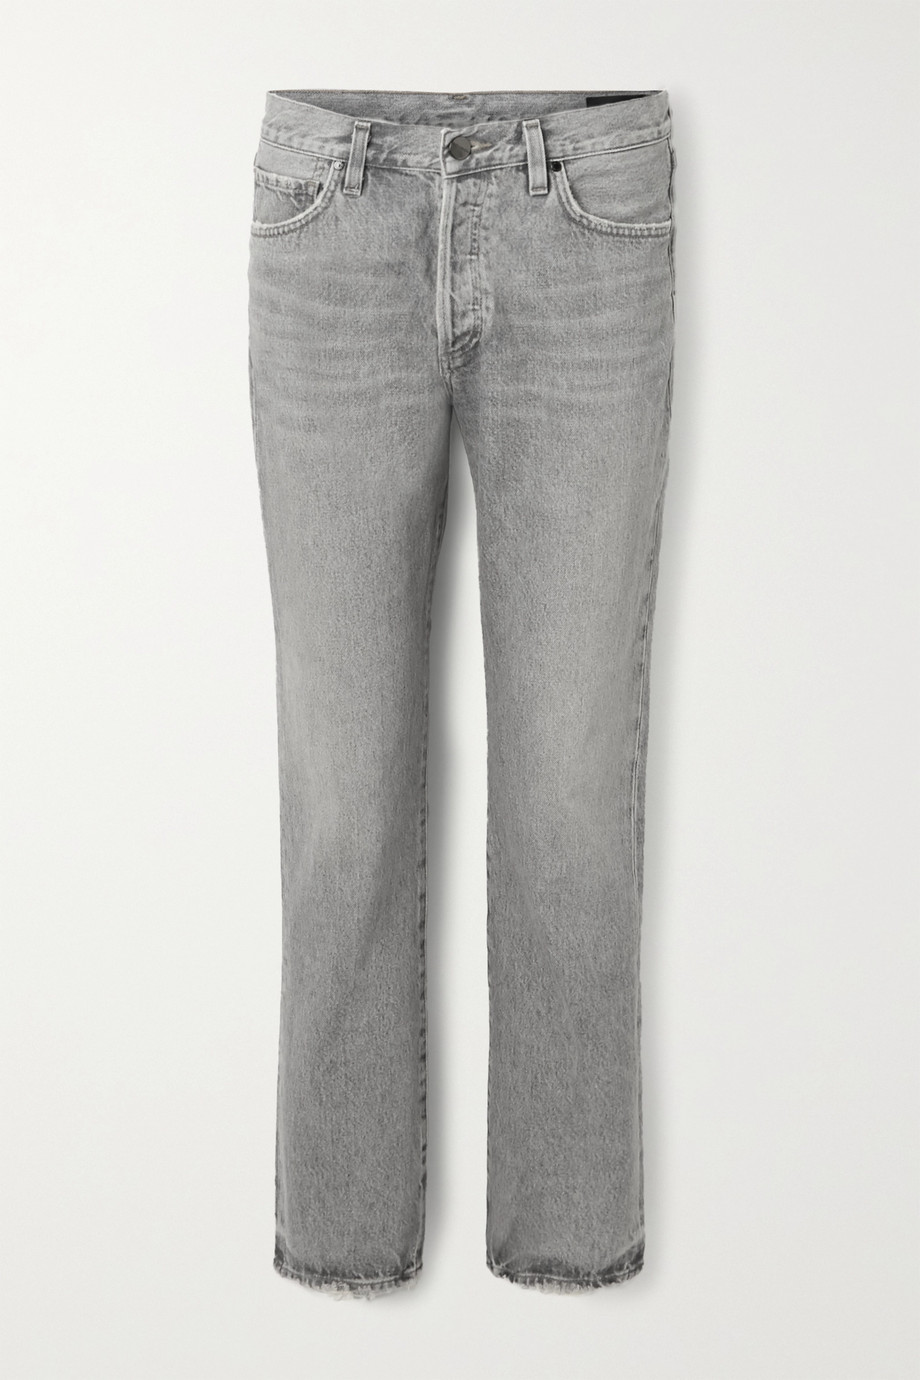 GOLDSIGN The Walcott organic distressed straight-leg jeans